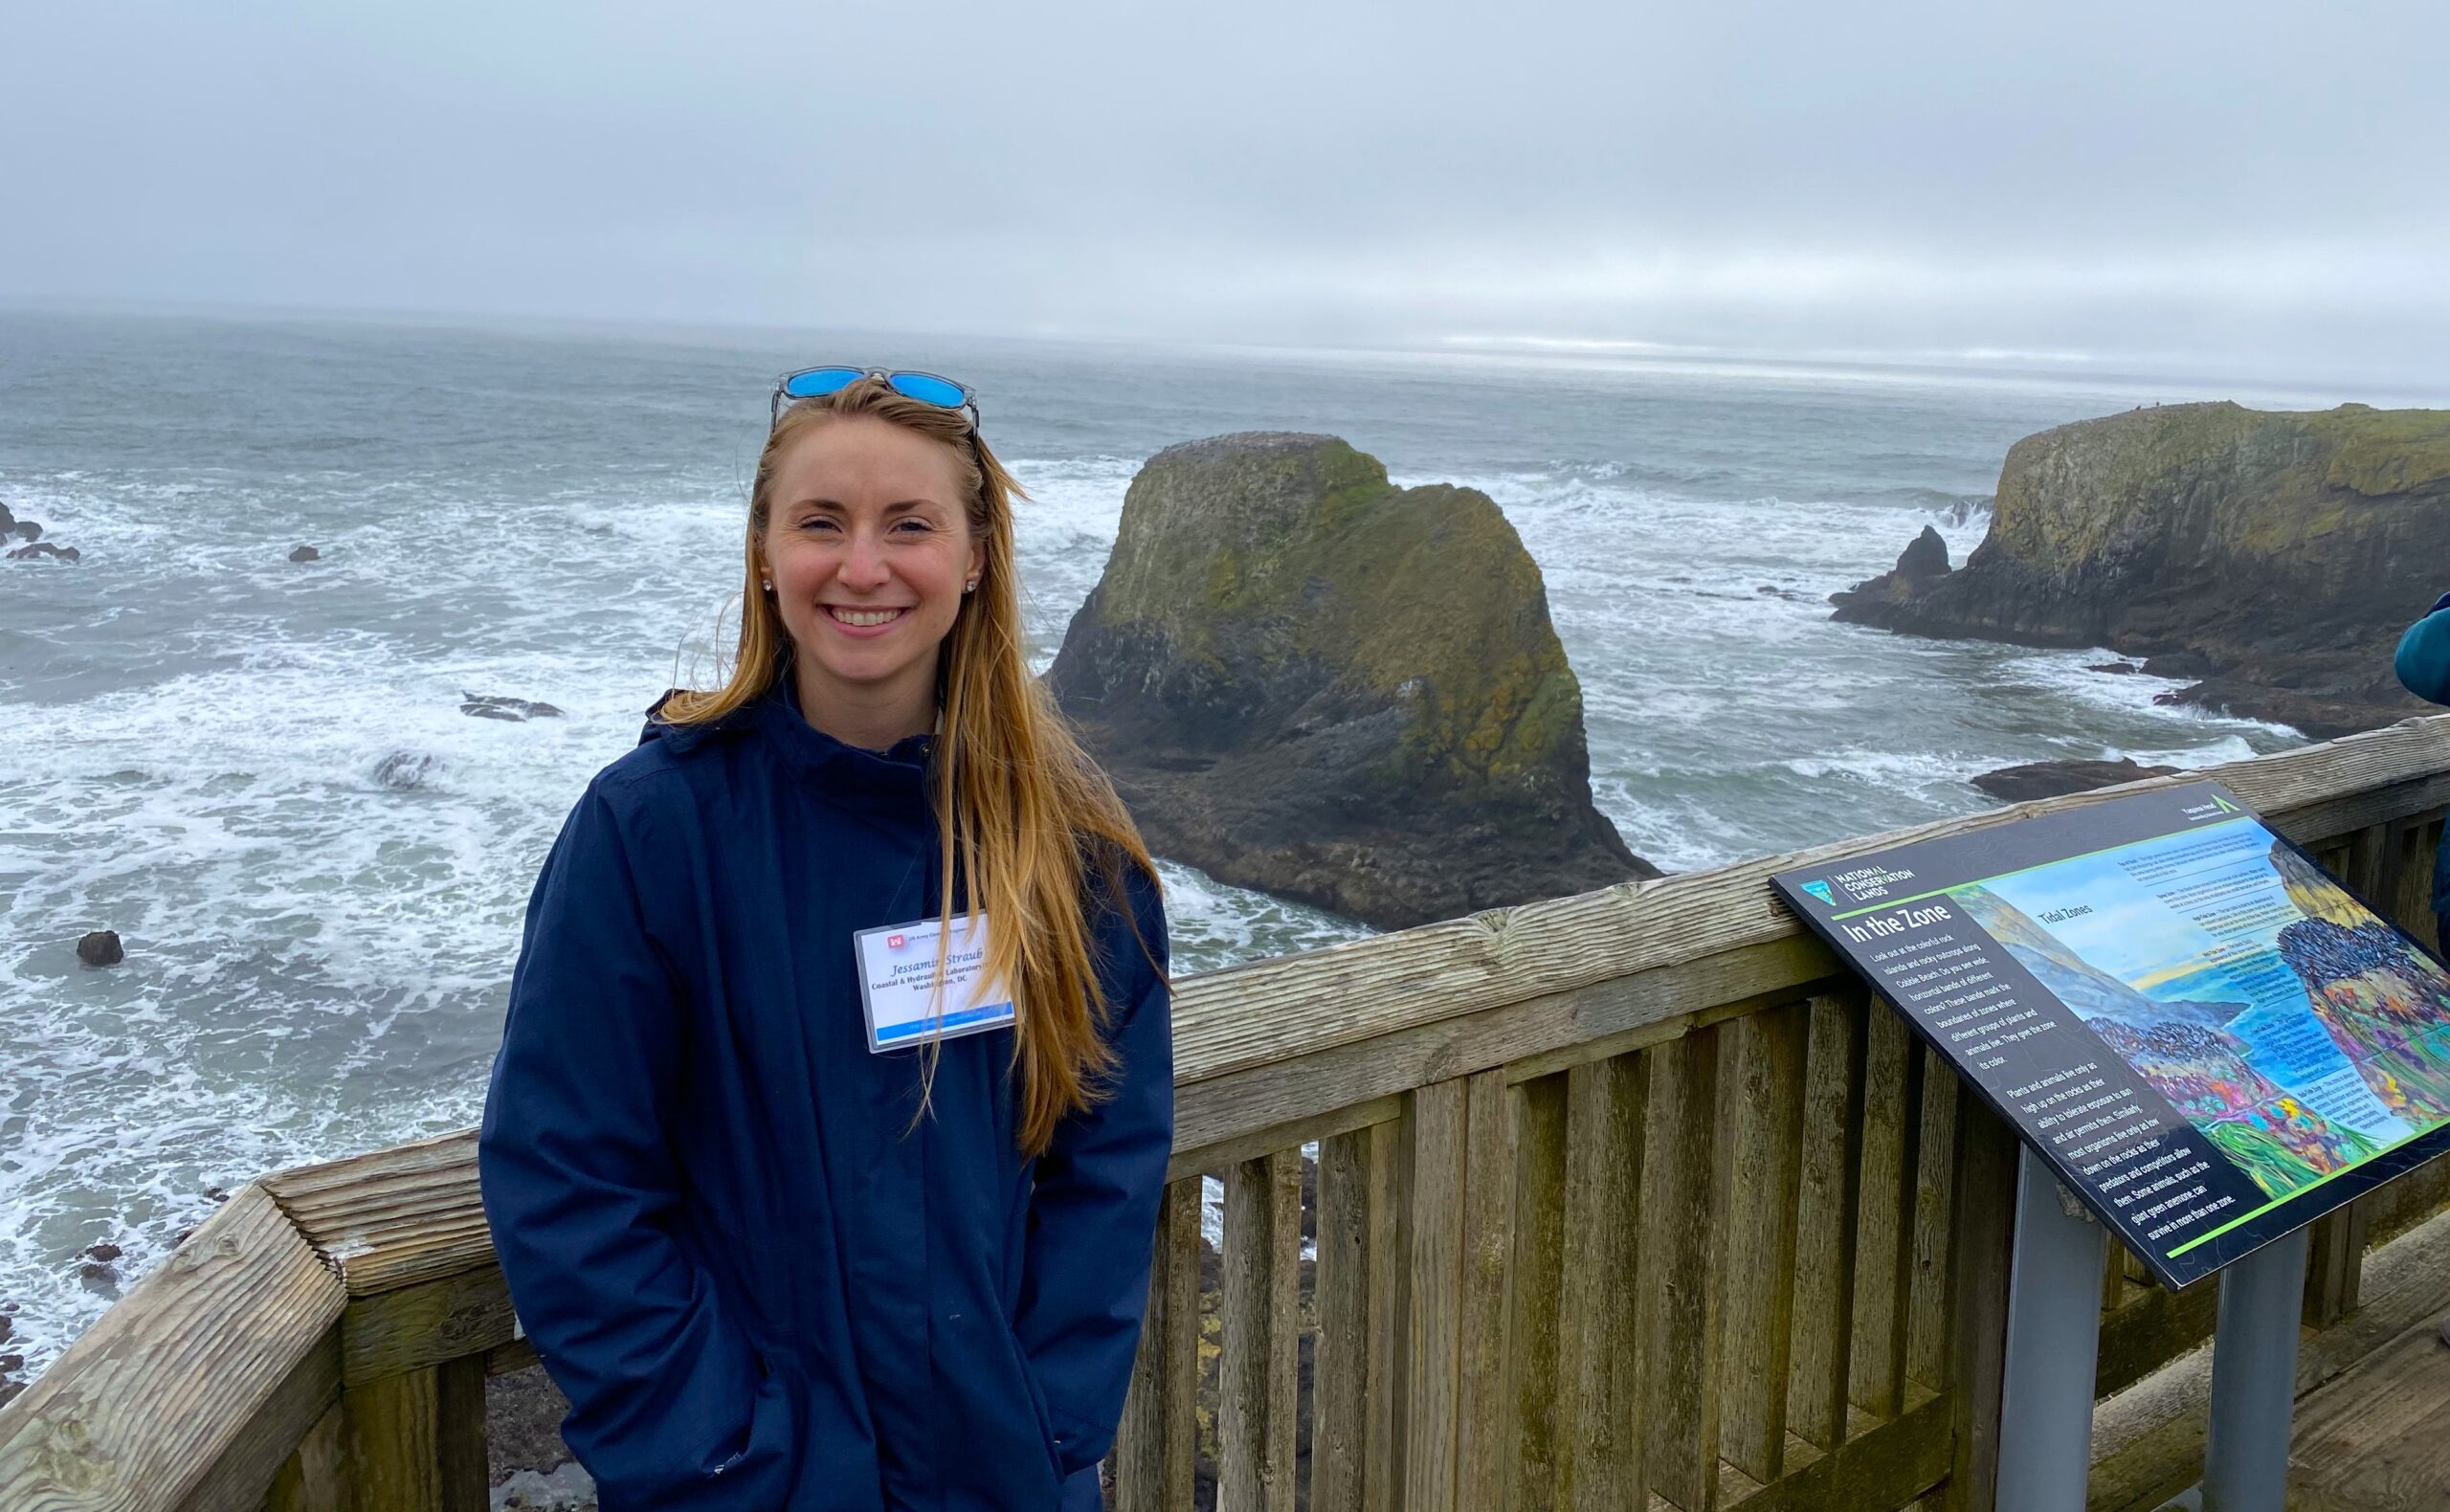 Jessie Straub at the Yaquina Head Marine Garden in Oregon